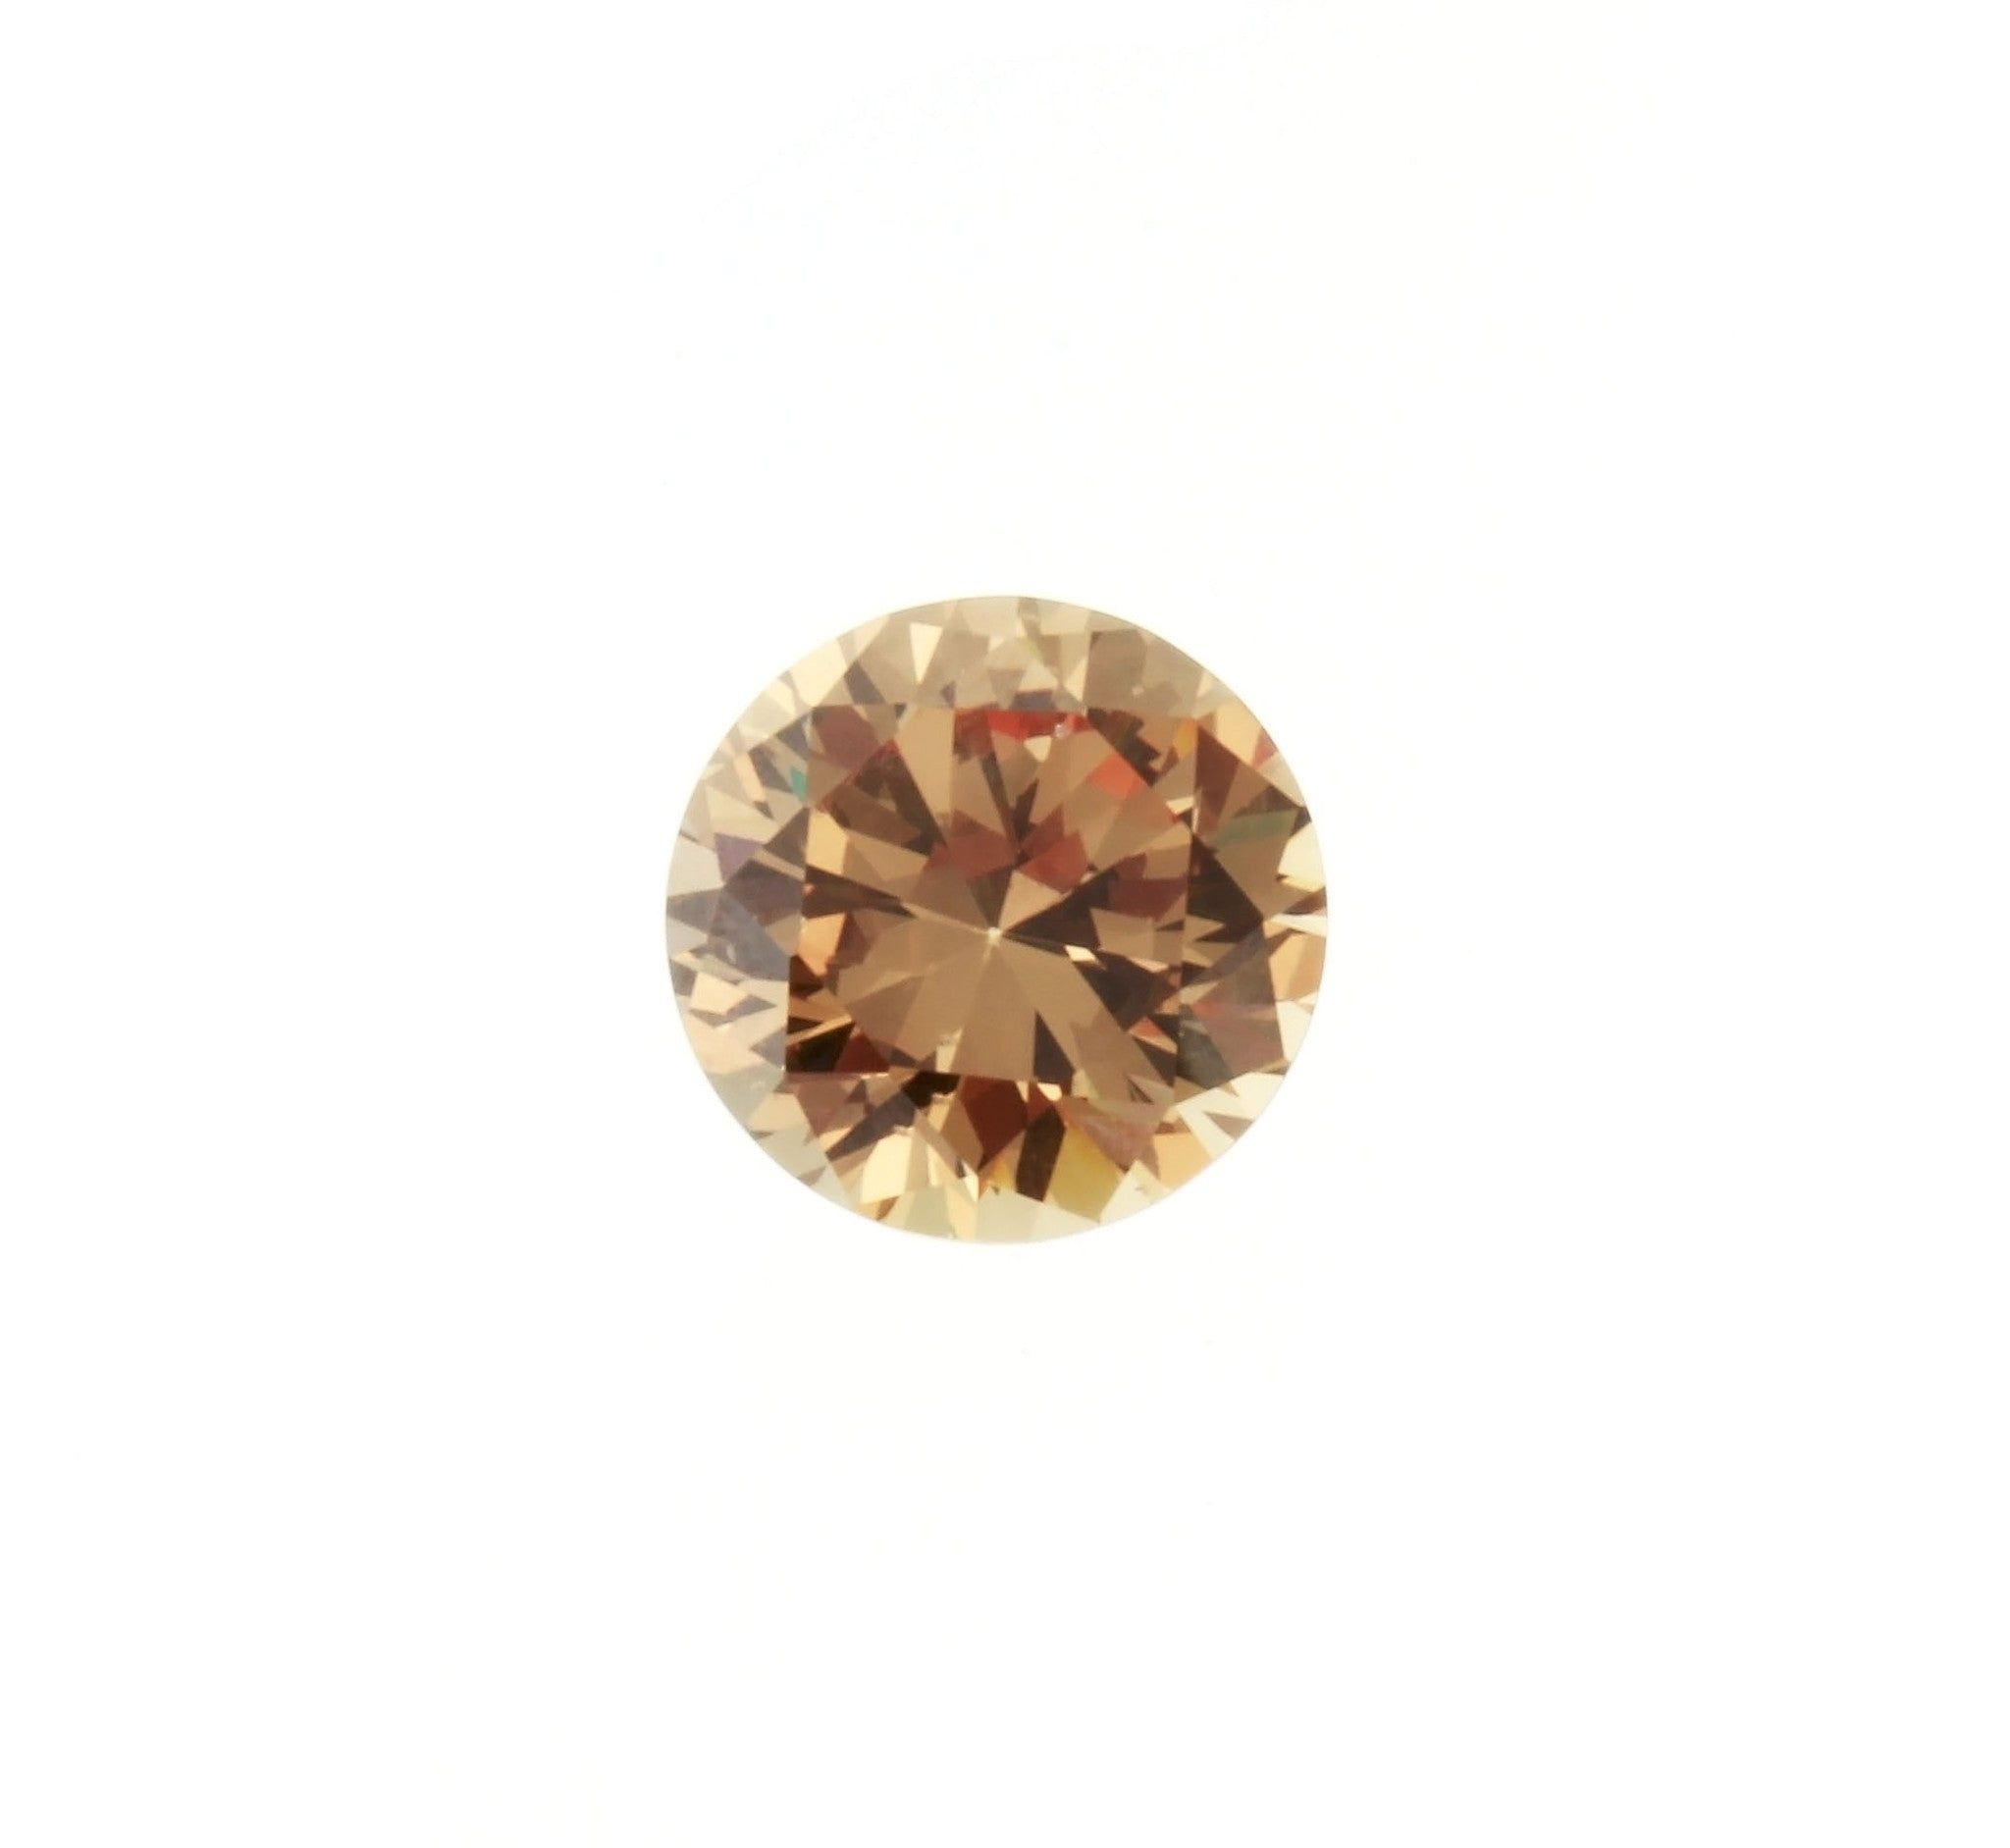 CUBIC ZIRCONIA TOPAZ IMPERIAL ROUND GIANT FACETED GEMS